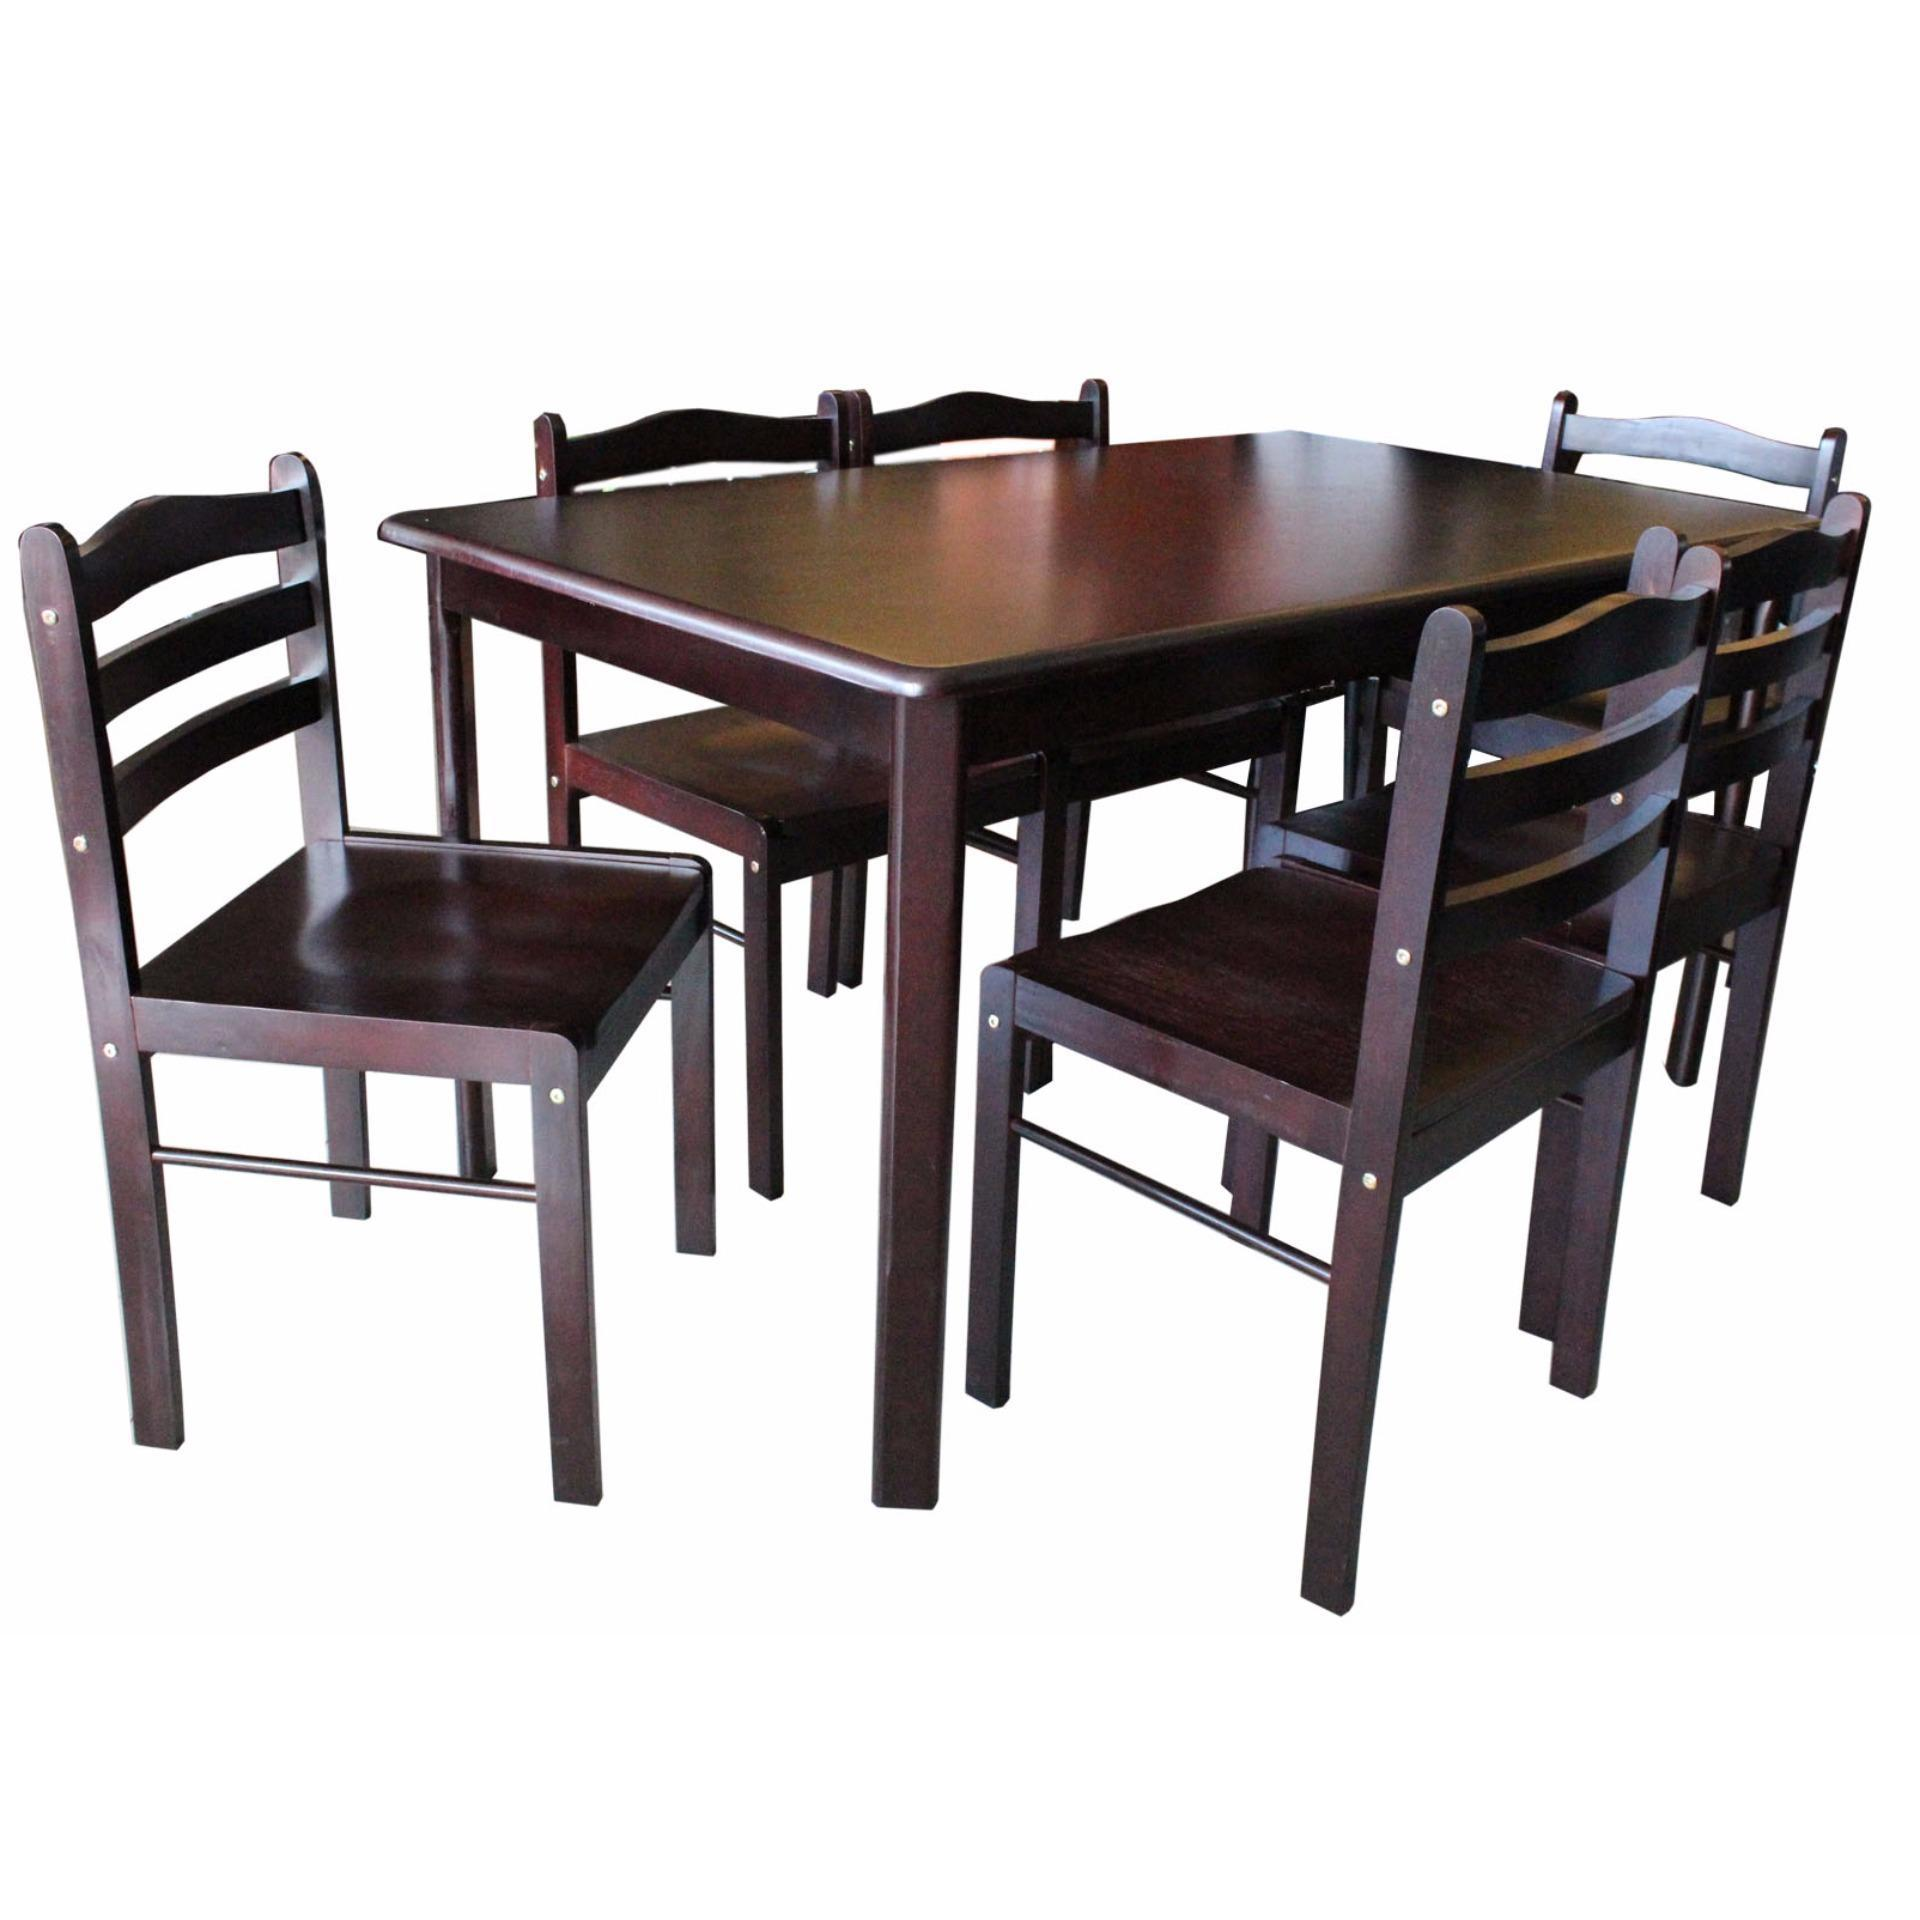 Image result for DINING SET